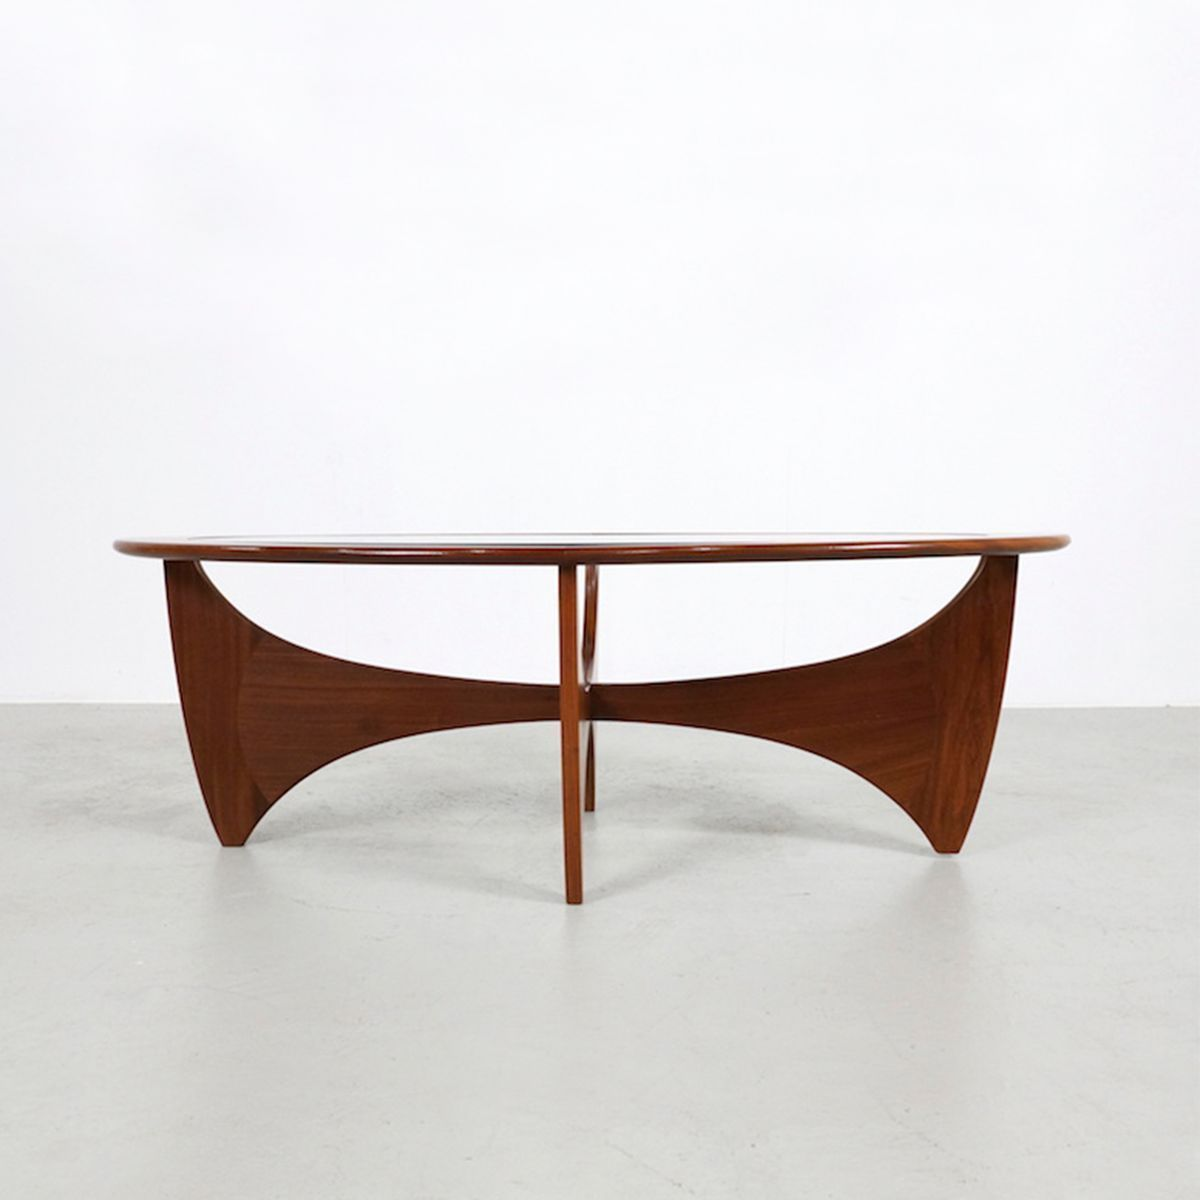 Ovaler Teak Astro Couchtisch Von V Wilkins Fur G Plan 1970er Fs Inspire Teak Glass Table Table